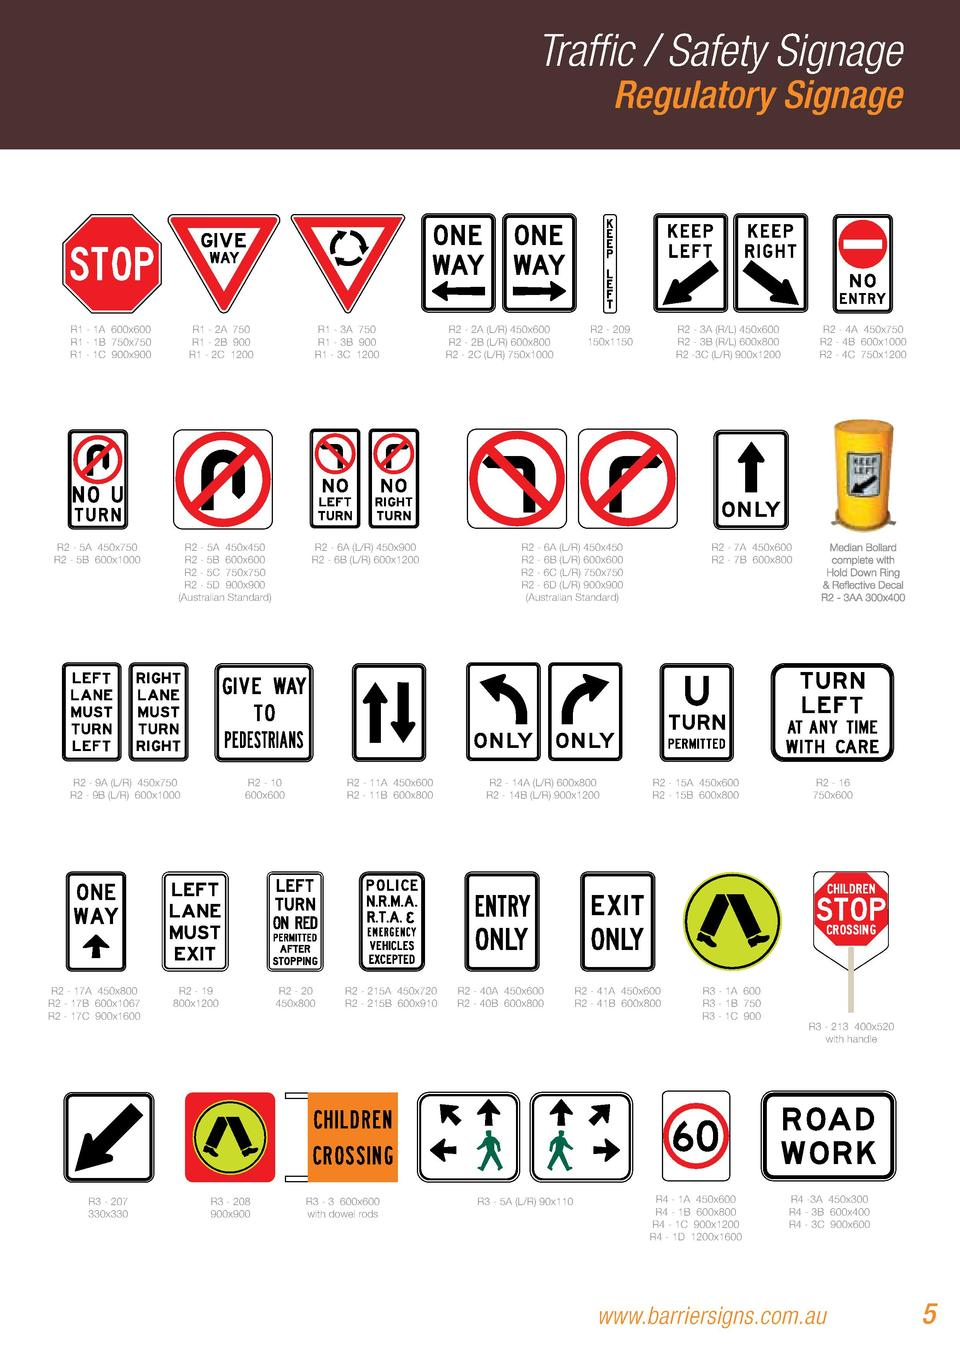 Traffic   Safety Signage  Regulatory Signage  R1 - 1A 600x600 R1 - 1B 750x750 R1 - 1C 900x900  R2 - 5A 450x750 R2 - 5B 600...